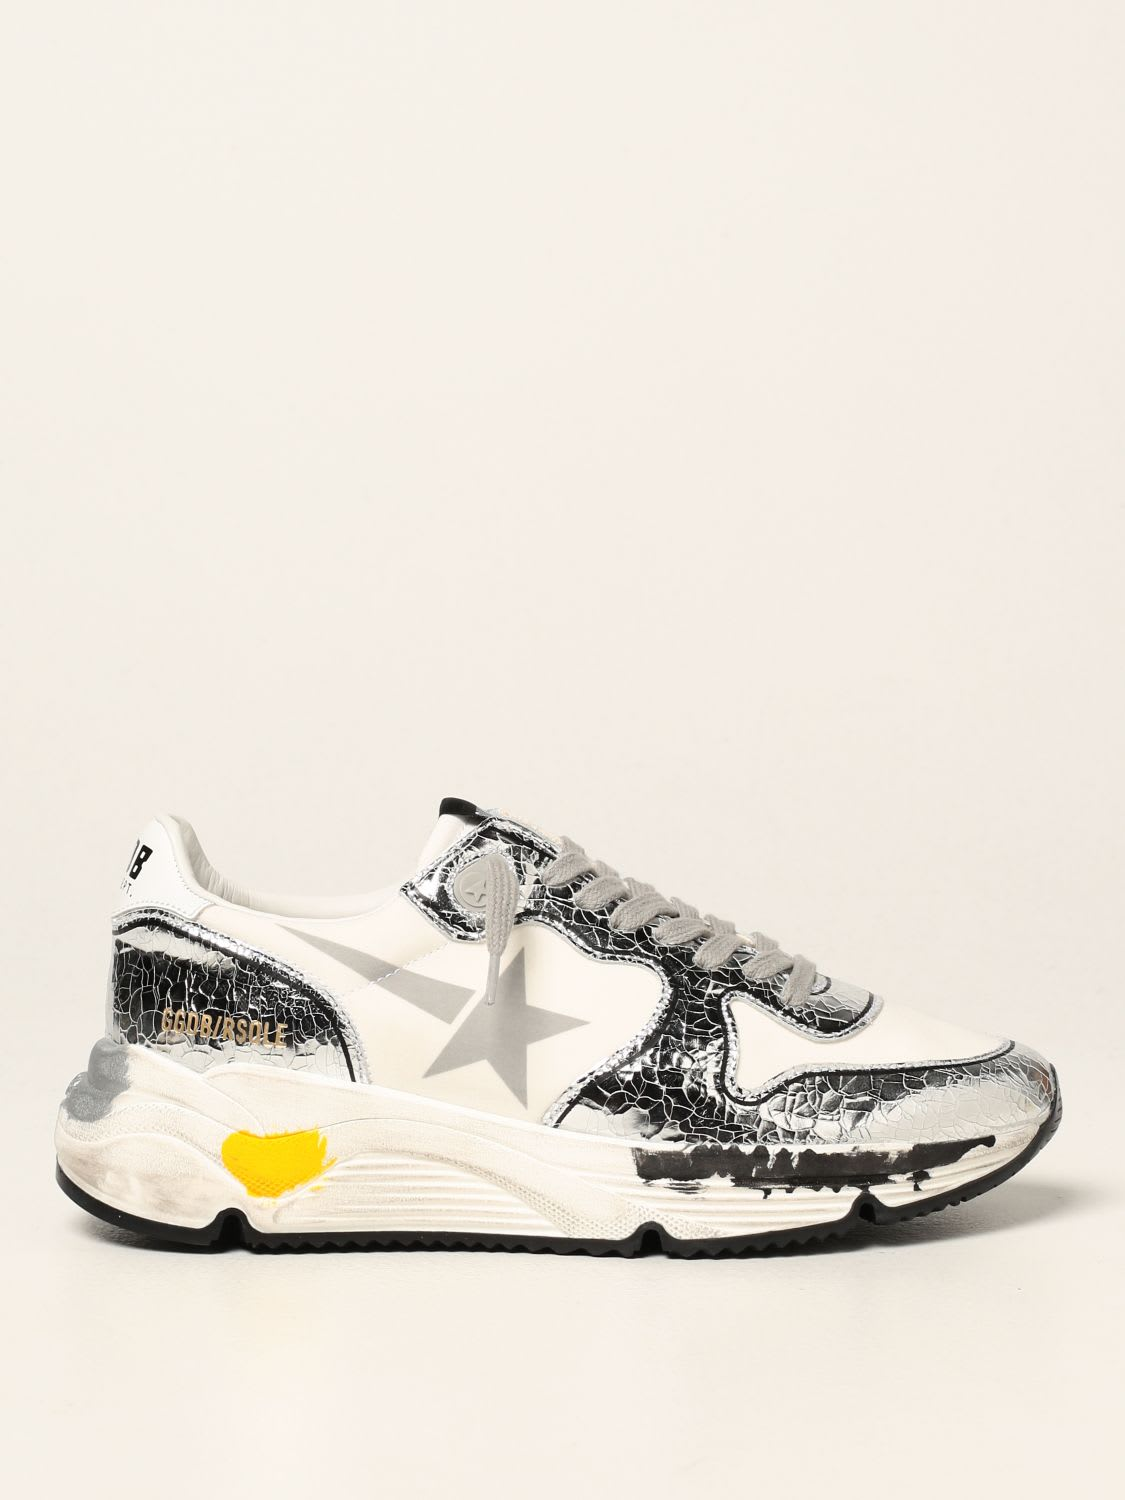 Golden Goose Sneakers Golden Goose Running Sole Sneakers In Laminated Leather And Lycra